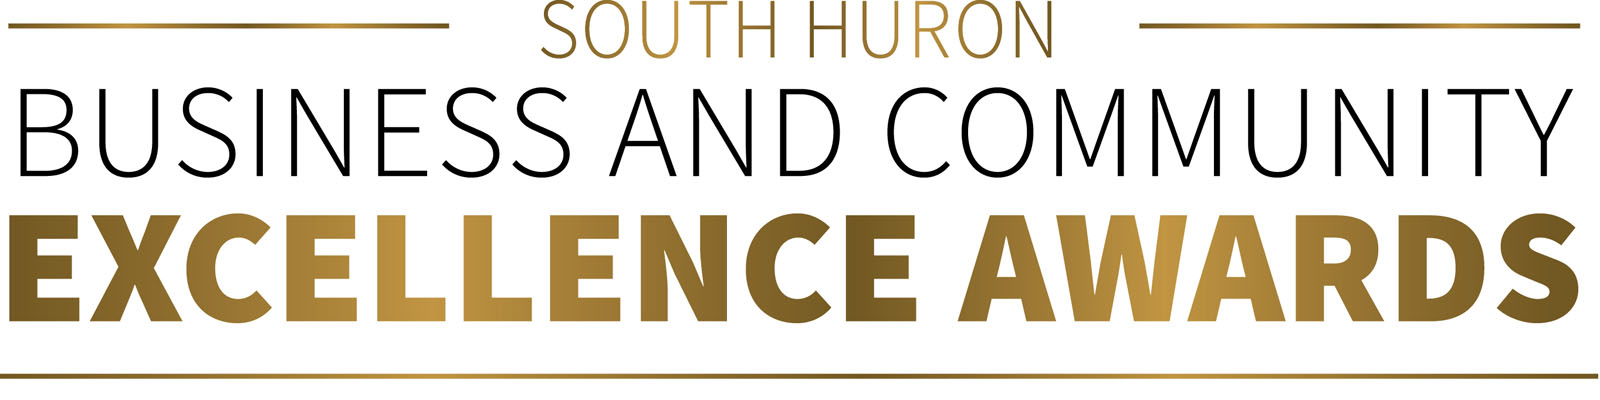 South Huron Business & Community Excellence Awards Gala Logo